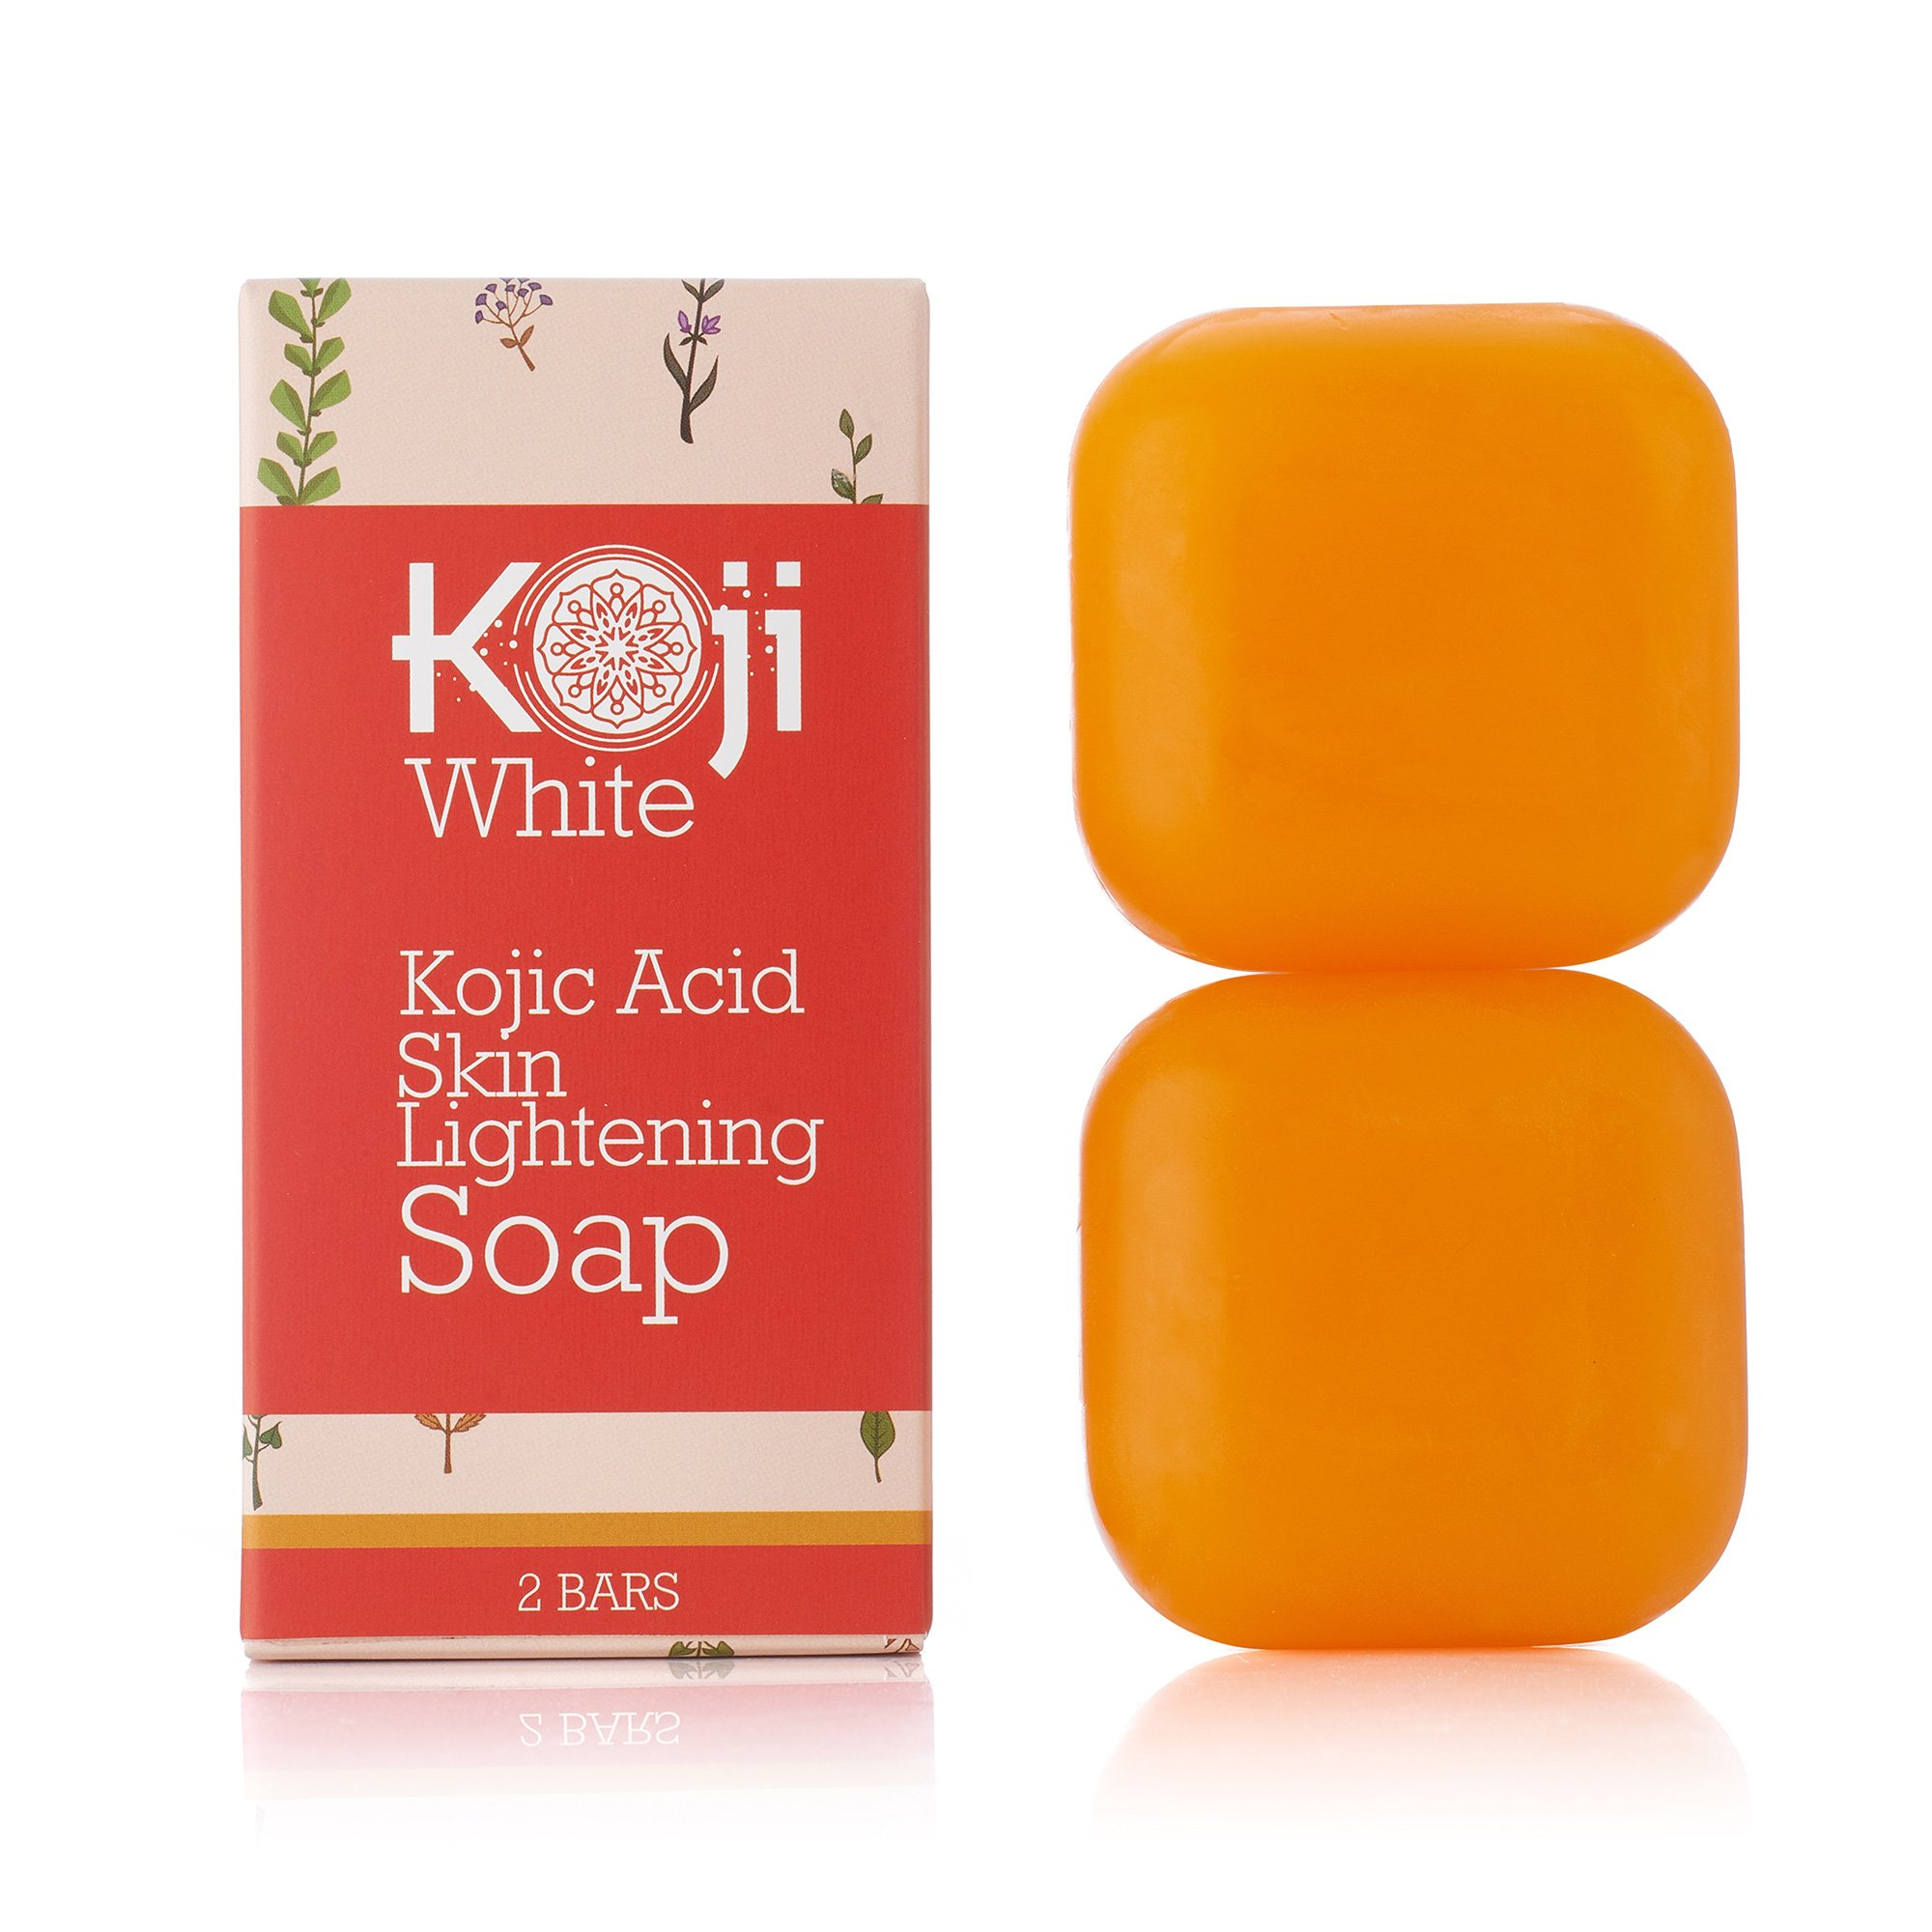 Pure Kojic Acid Skin Lightening Soap For Hyperpigmentation, Dark Spots, Sun Damage, Uneven Skin Tone ( 2.82 oz / 2 Bars )